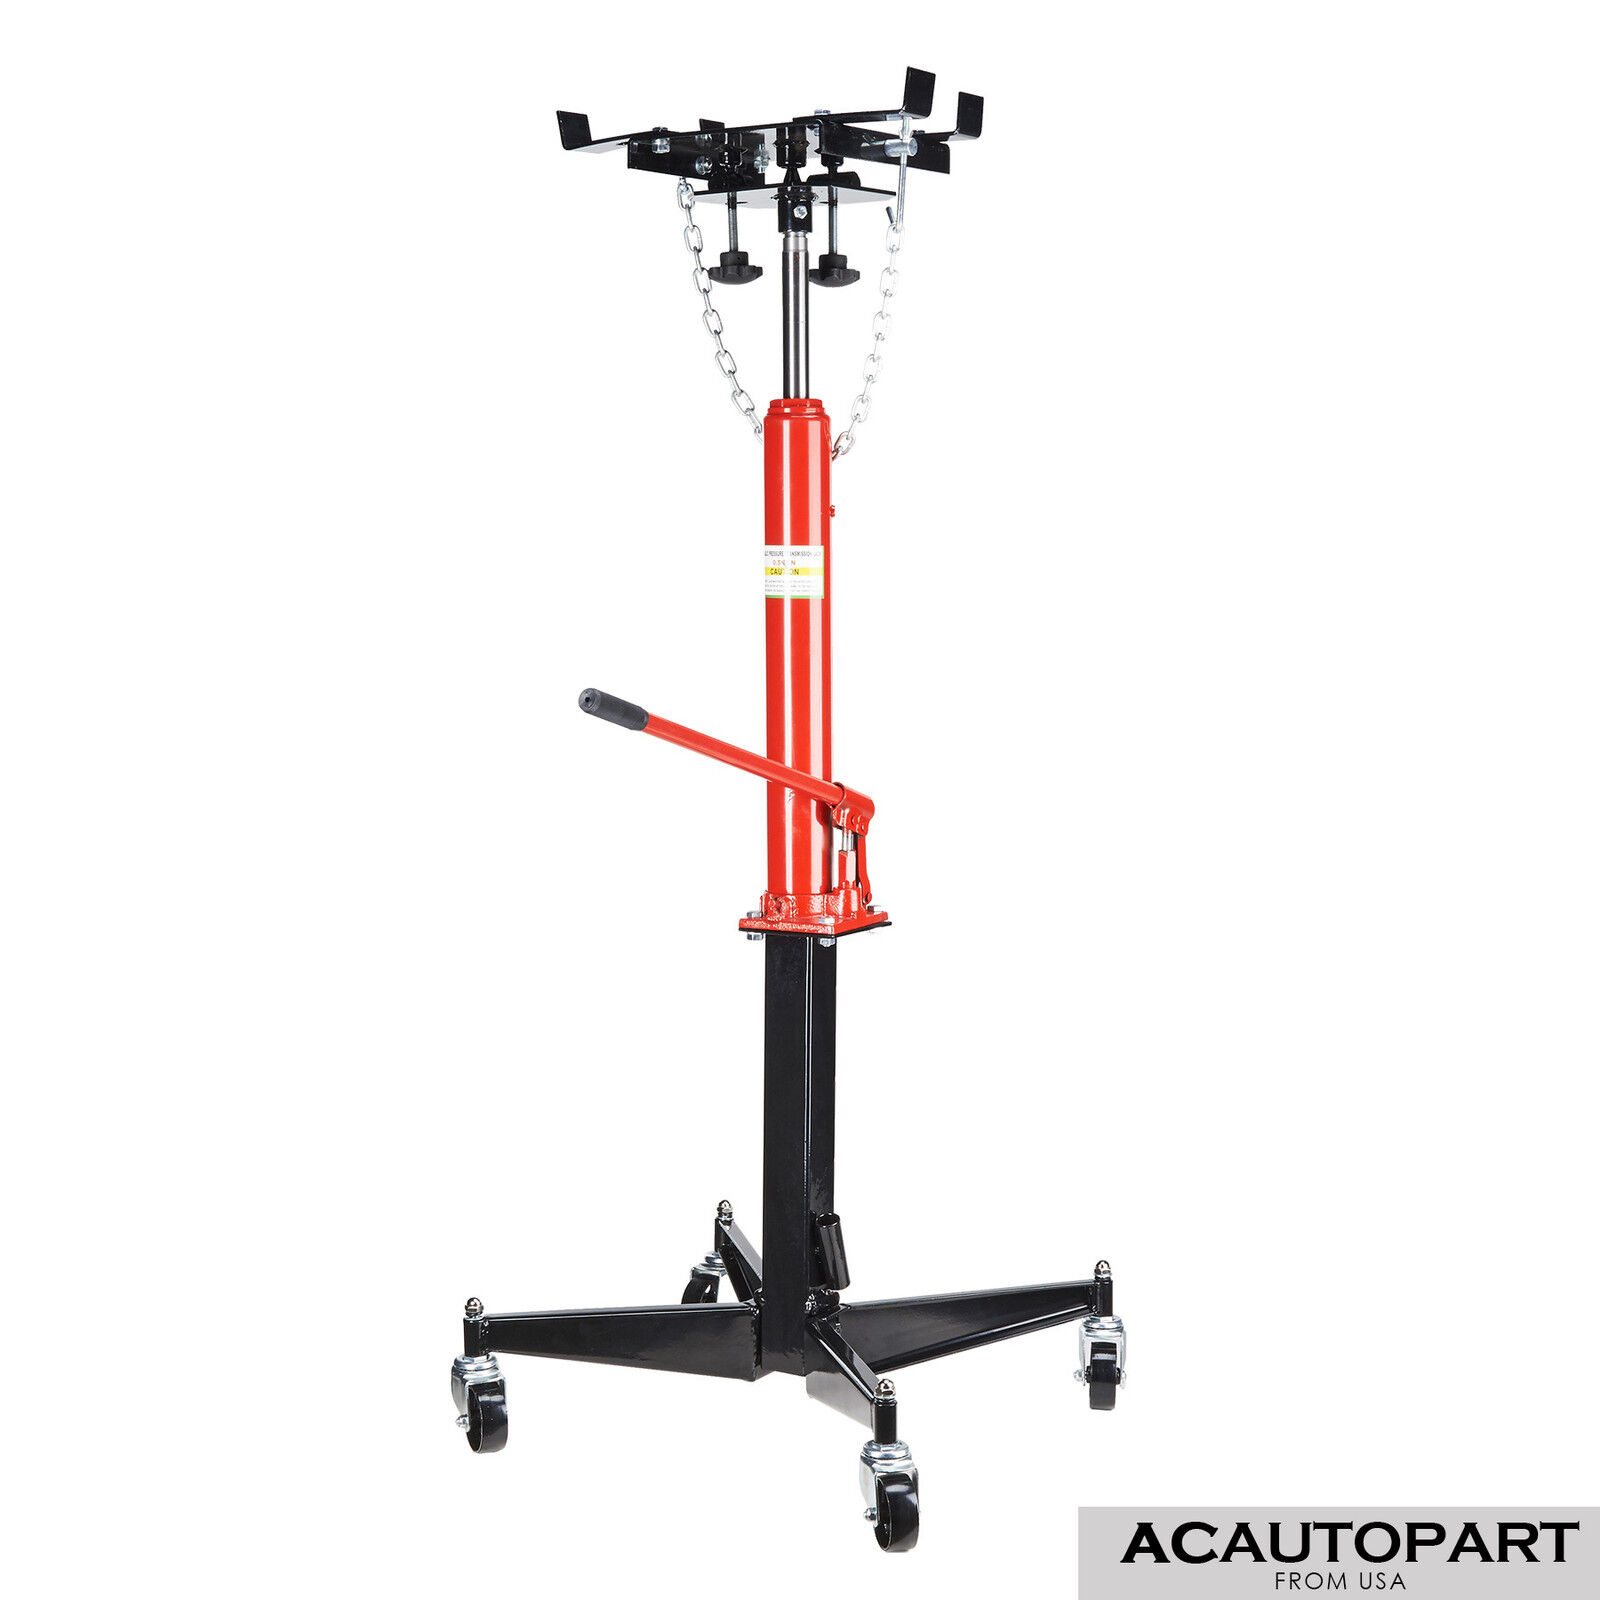 0.5T 1100lb Manual Transmission Jack Hydraulic Lift Pedestal 51'' to 71'' Height